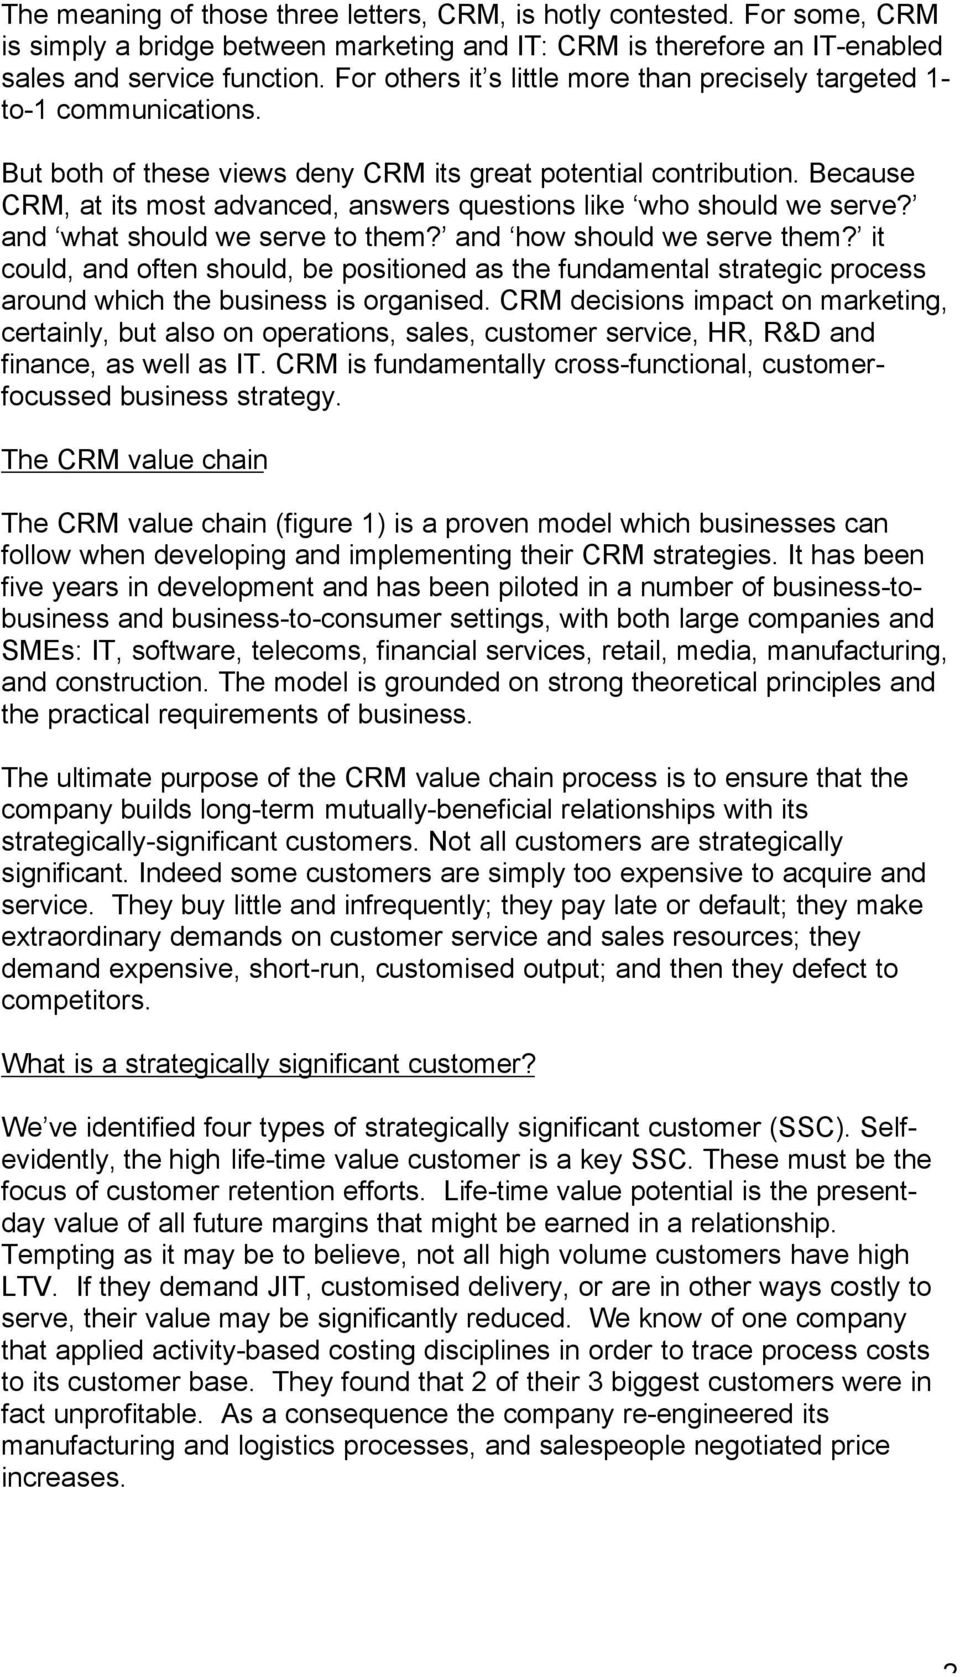 Because CRM, at its most advanced, answers questions like who should we serve? and what should we serve to them? and how should we serve them?